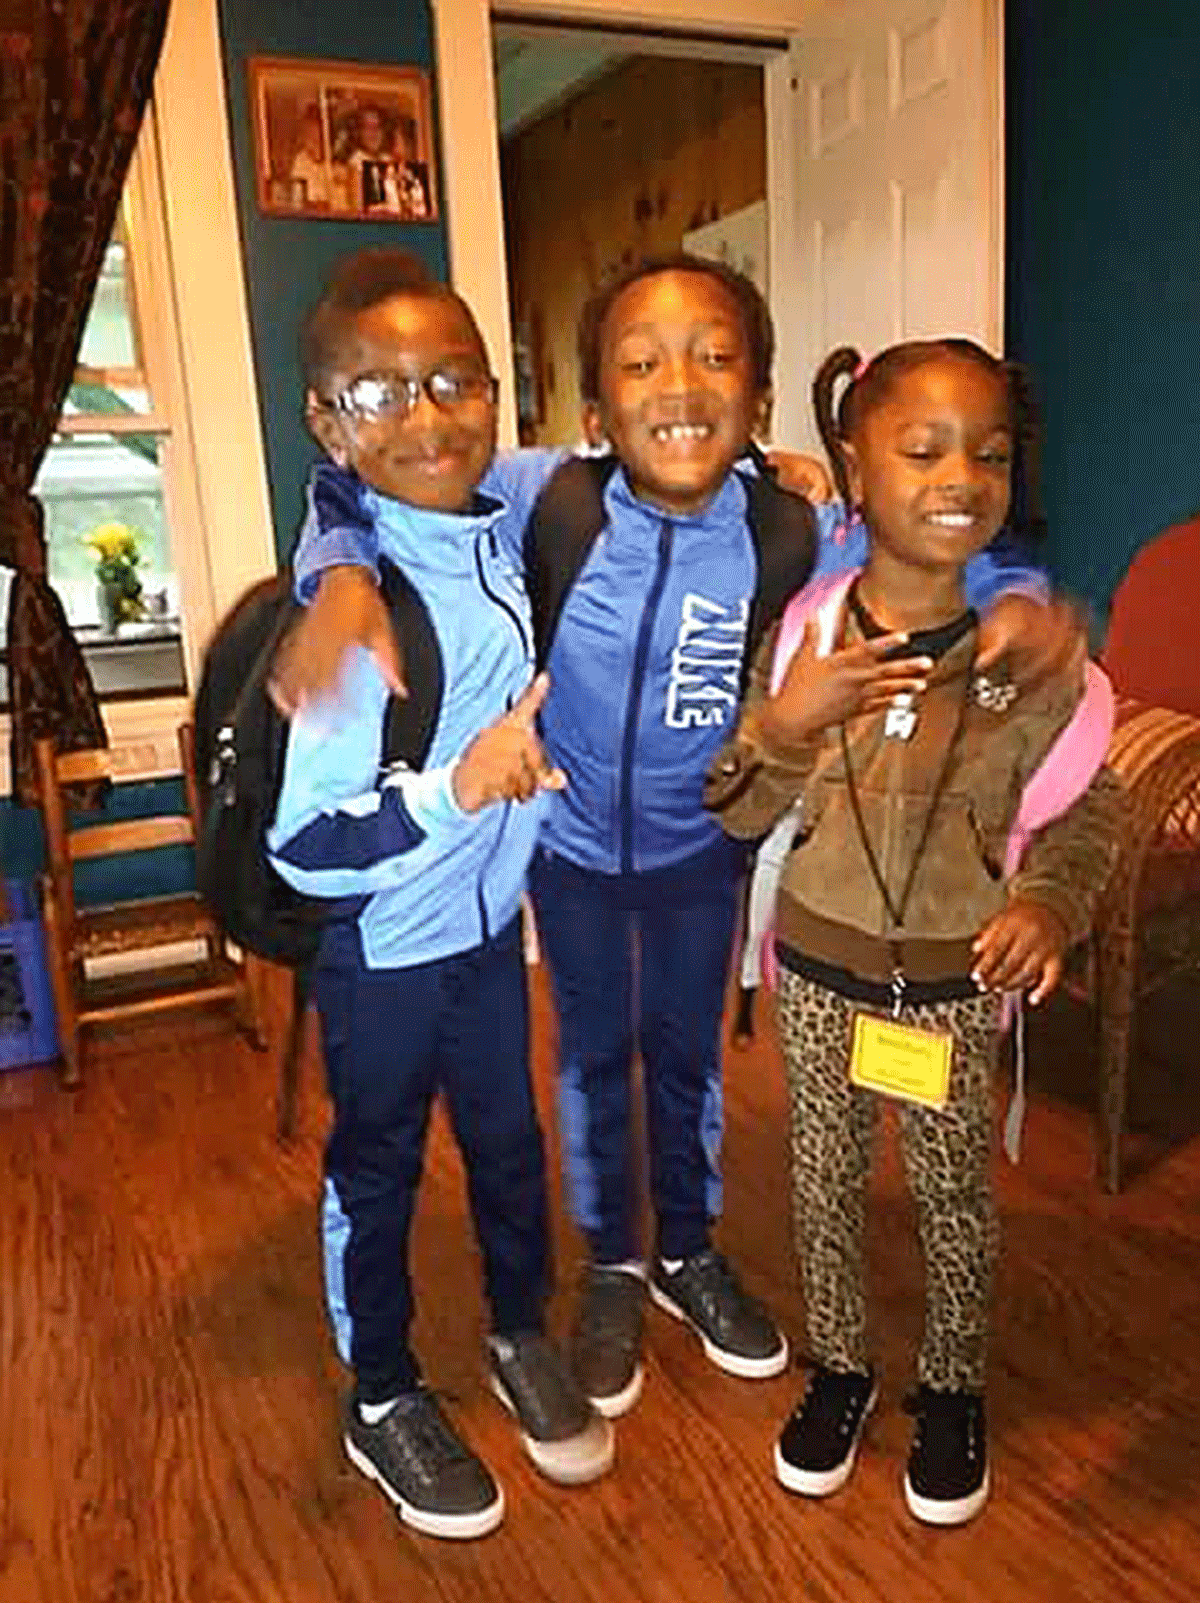 Noah Evans (first grade), Tre'Saiah Evans (third grade) and Sarah Evans (kindergarten), all of Lawrence Avenue Elementary School get ready for a new school year. Photo submitted by Jennifer Braxton.